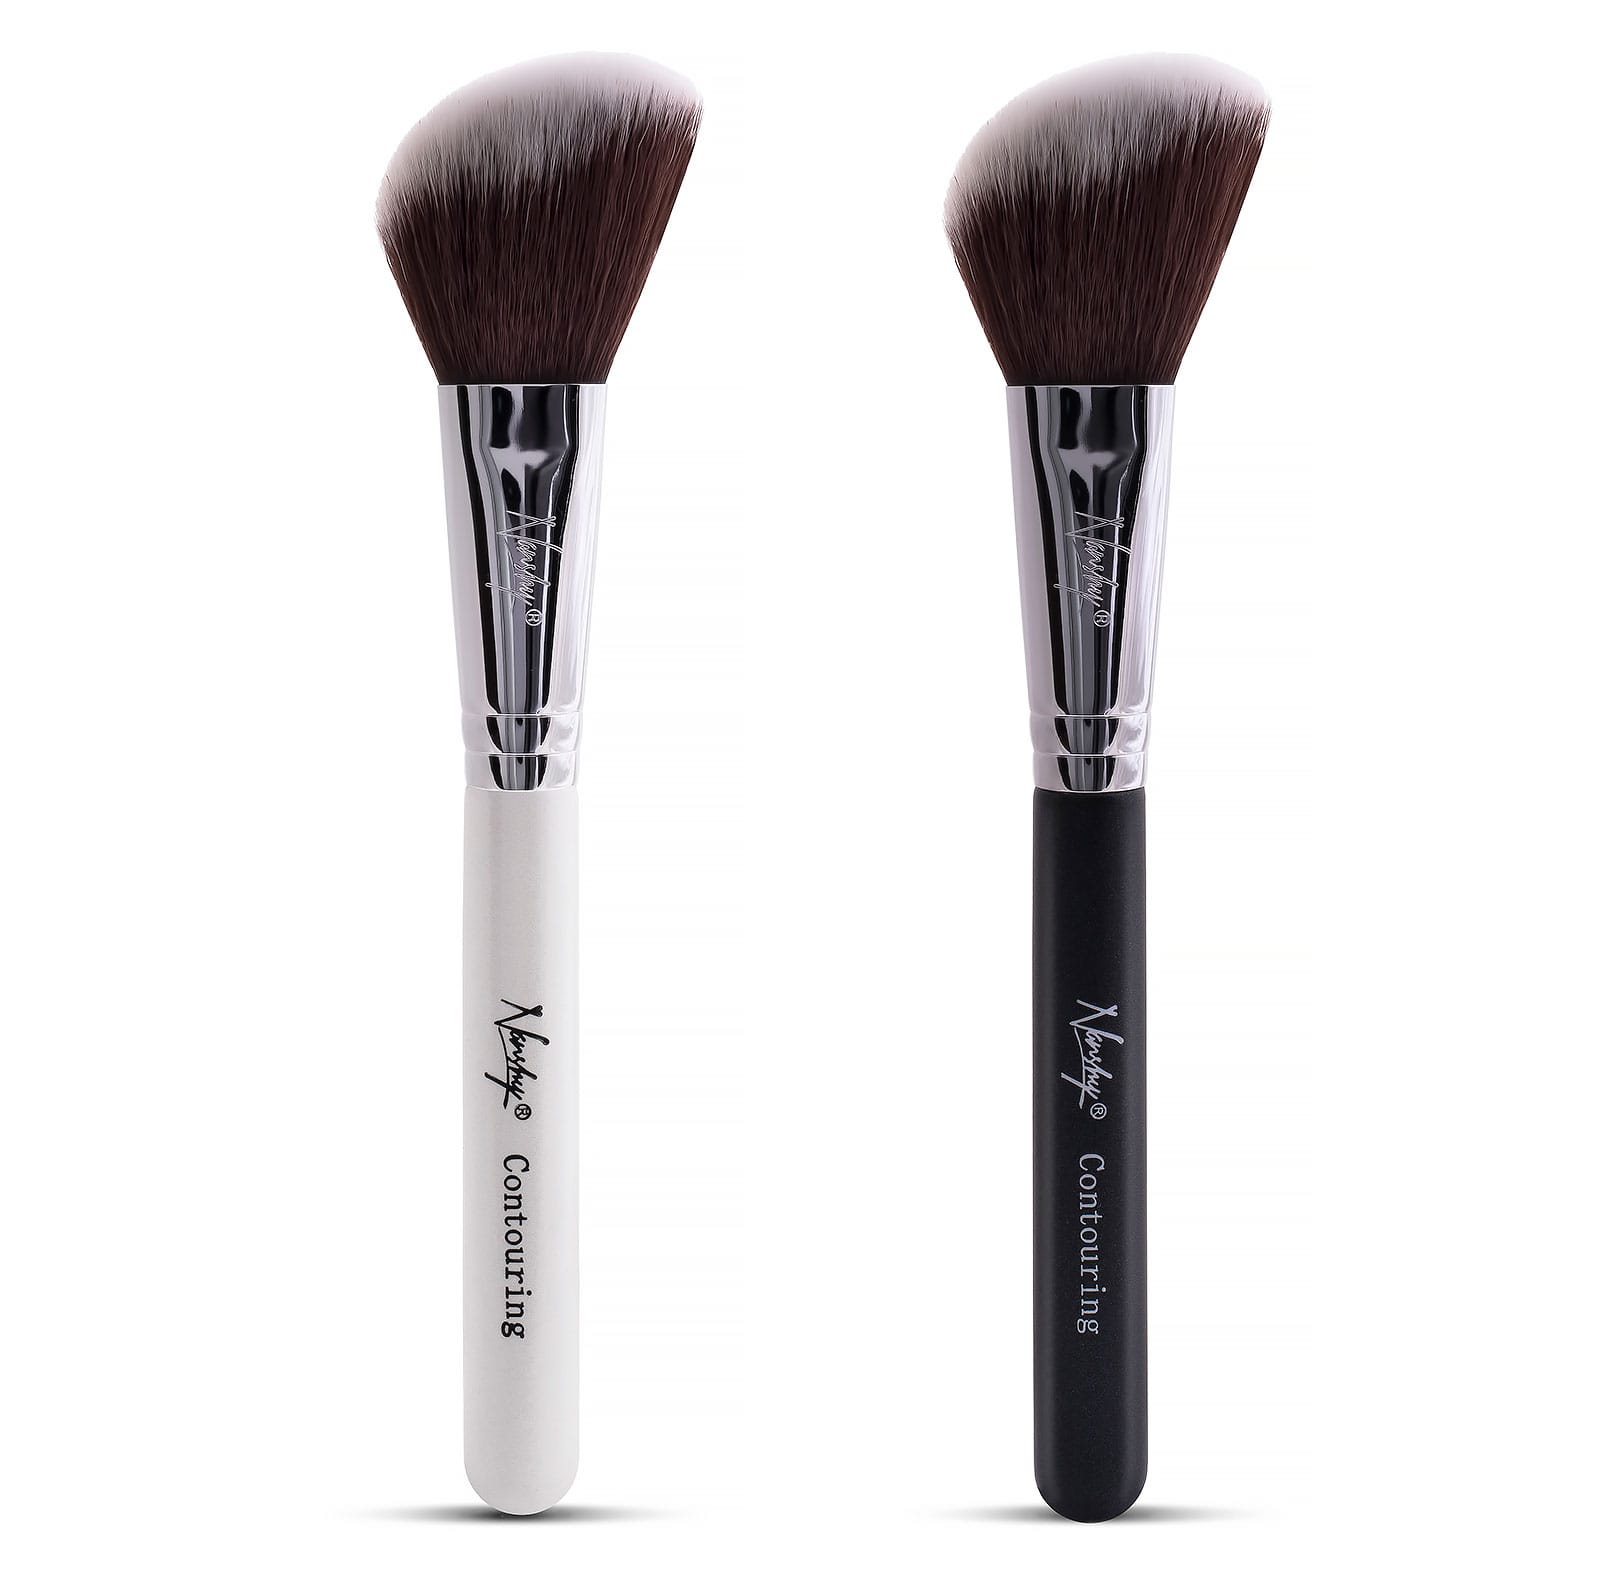 This contouring brush features man-made silky soft fiber and can be used for eyebrows, eyelashes, eyes and cheeks makeup. The professional flat contour brush by Kingfansion can be used to apply powder, cream and liquid-based products. However, some users complain that it takes them about minutes to get the suds out of the brush.